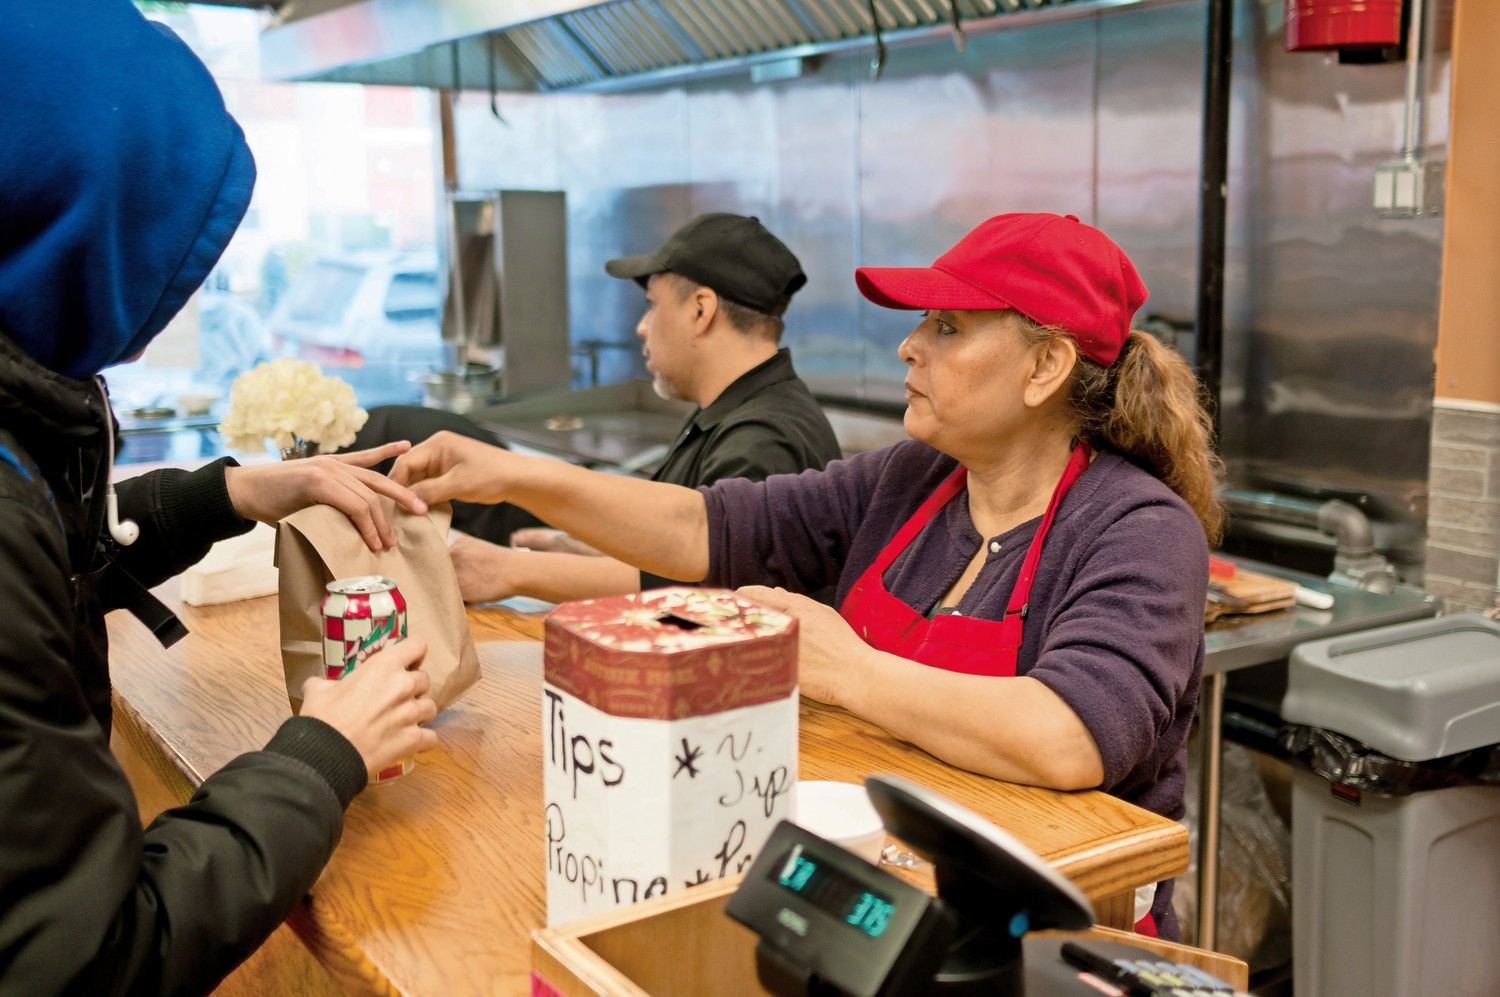 Maritza Hernandez, the owner of Amor Eterno, hands a sandwich to a customer. Specializing in tacos, Amor Eterno opened Jan. 13.